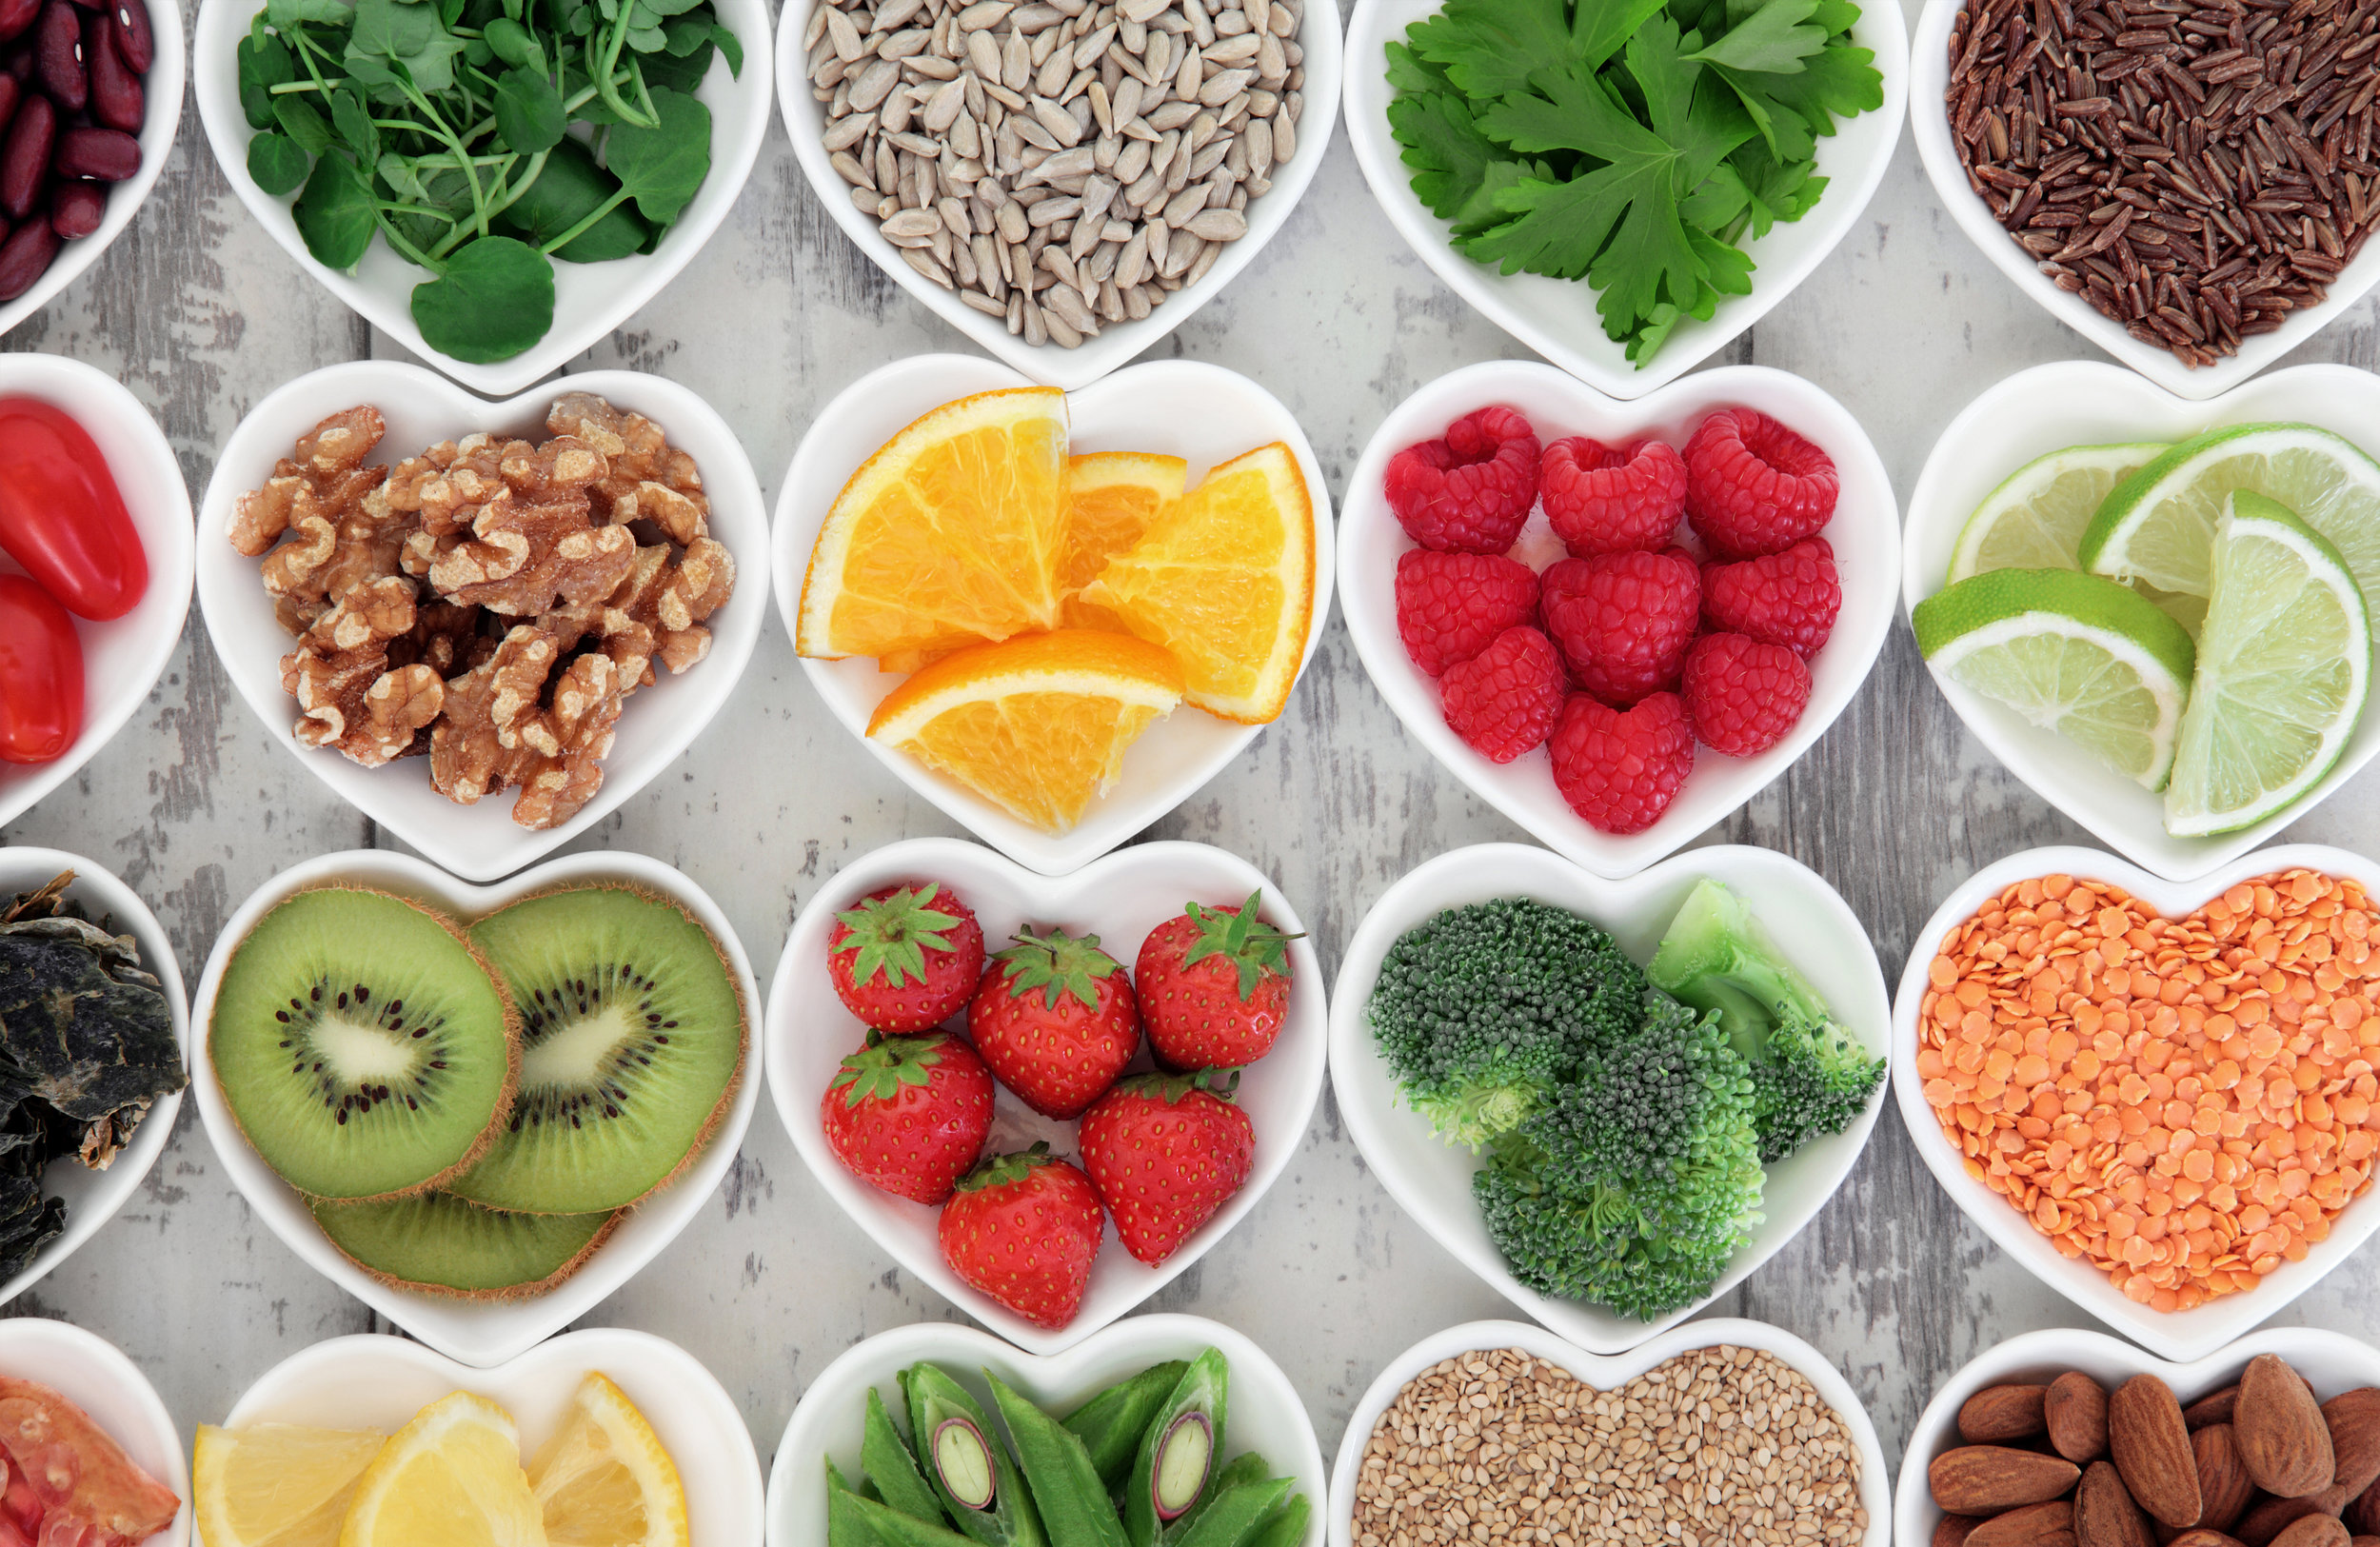 Waverly group diet and nutrition counseling for children